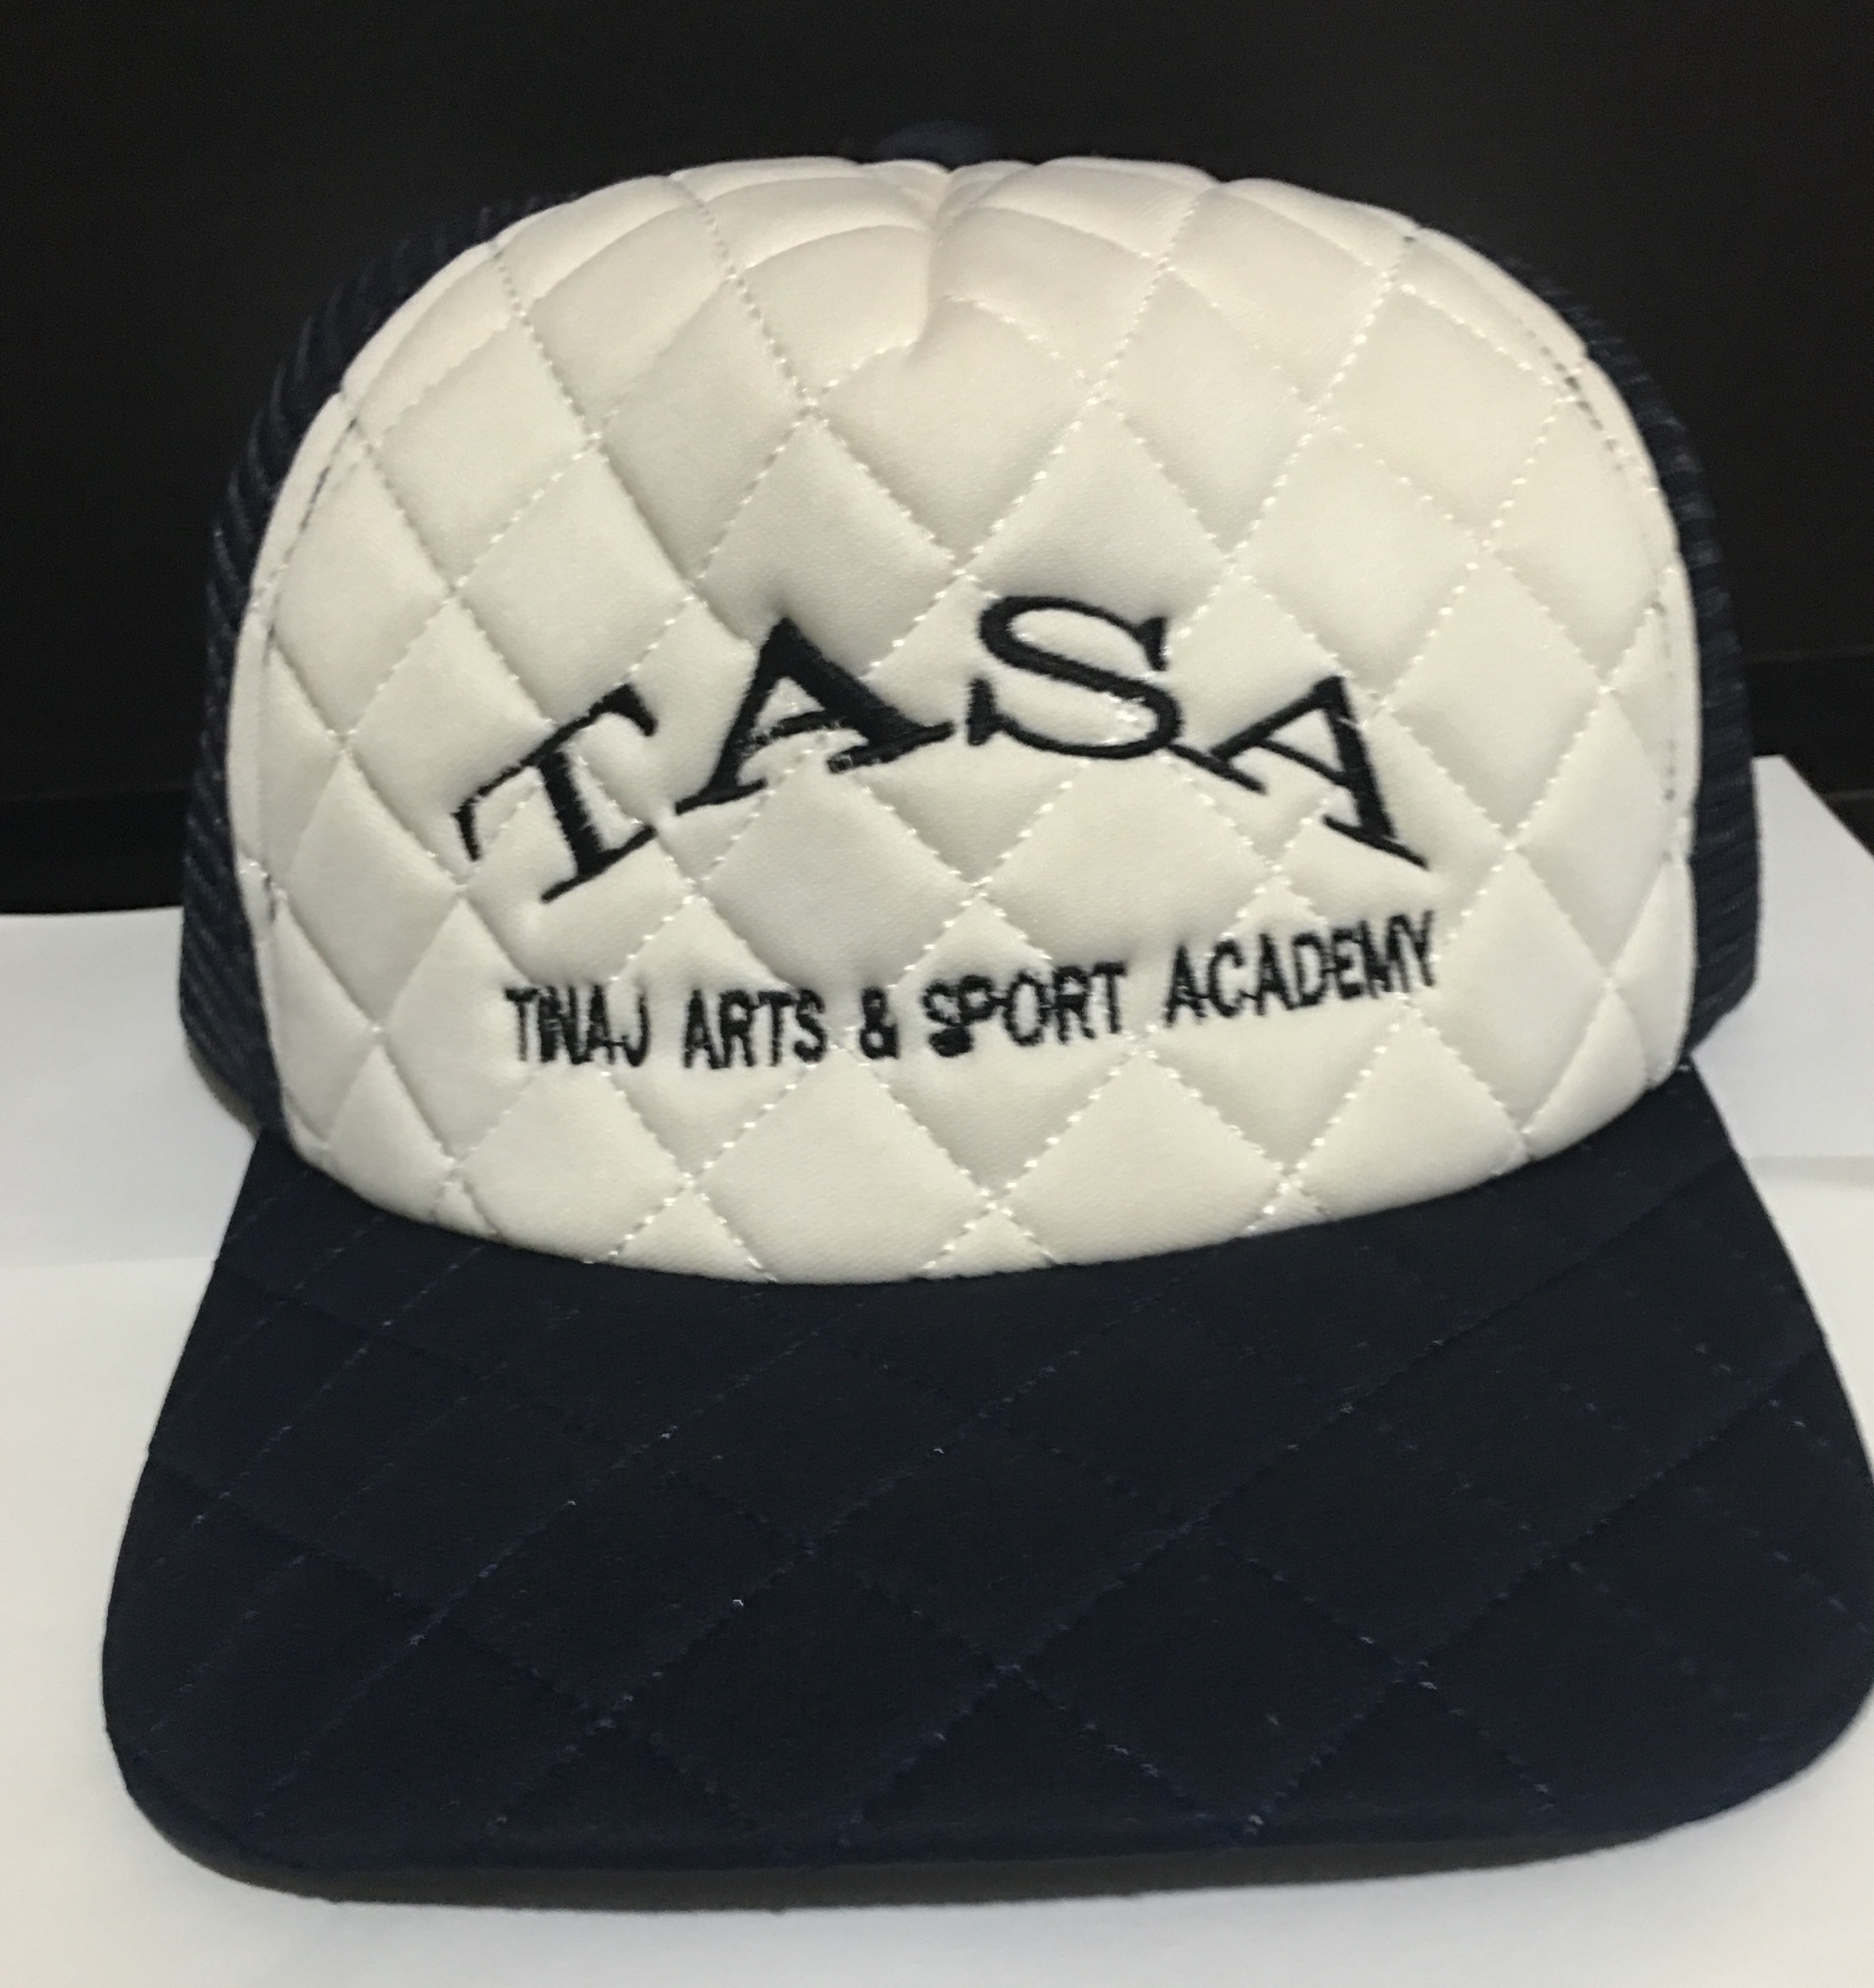 Tinaj Arts & Sports Academy